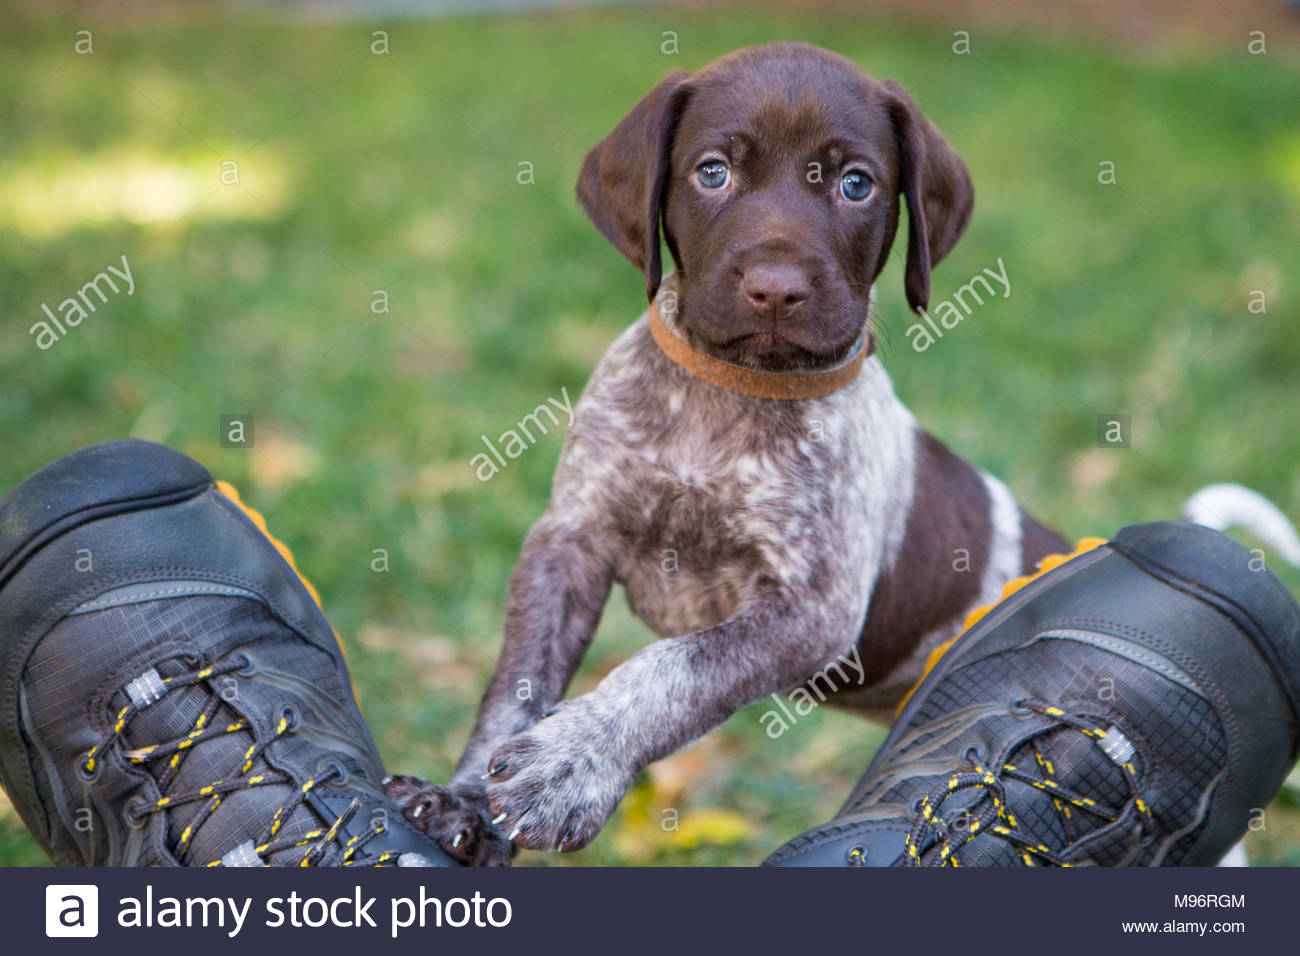 German Shorthaired pointer puppy standing on  a mans shoes and mischievously looking toward camera - Stock Image